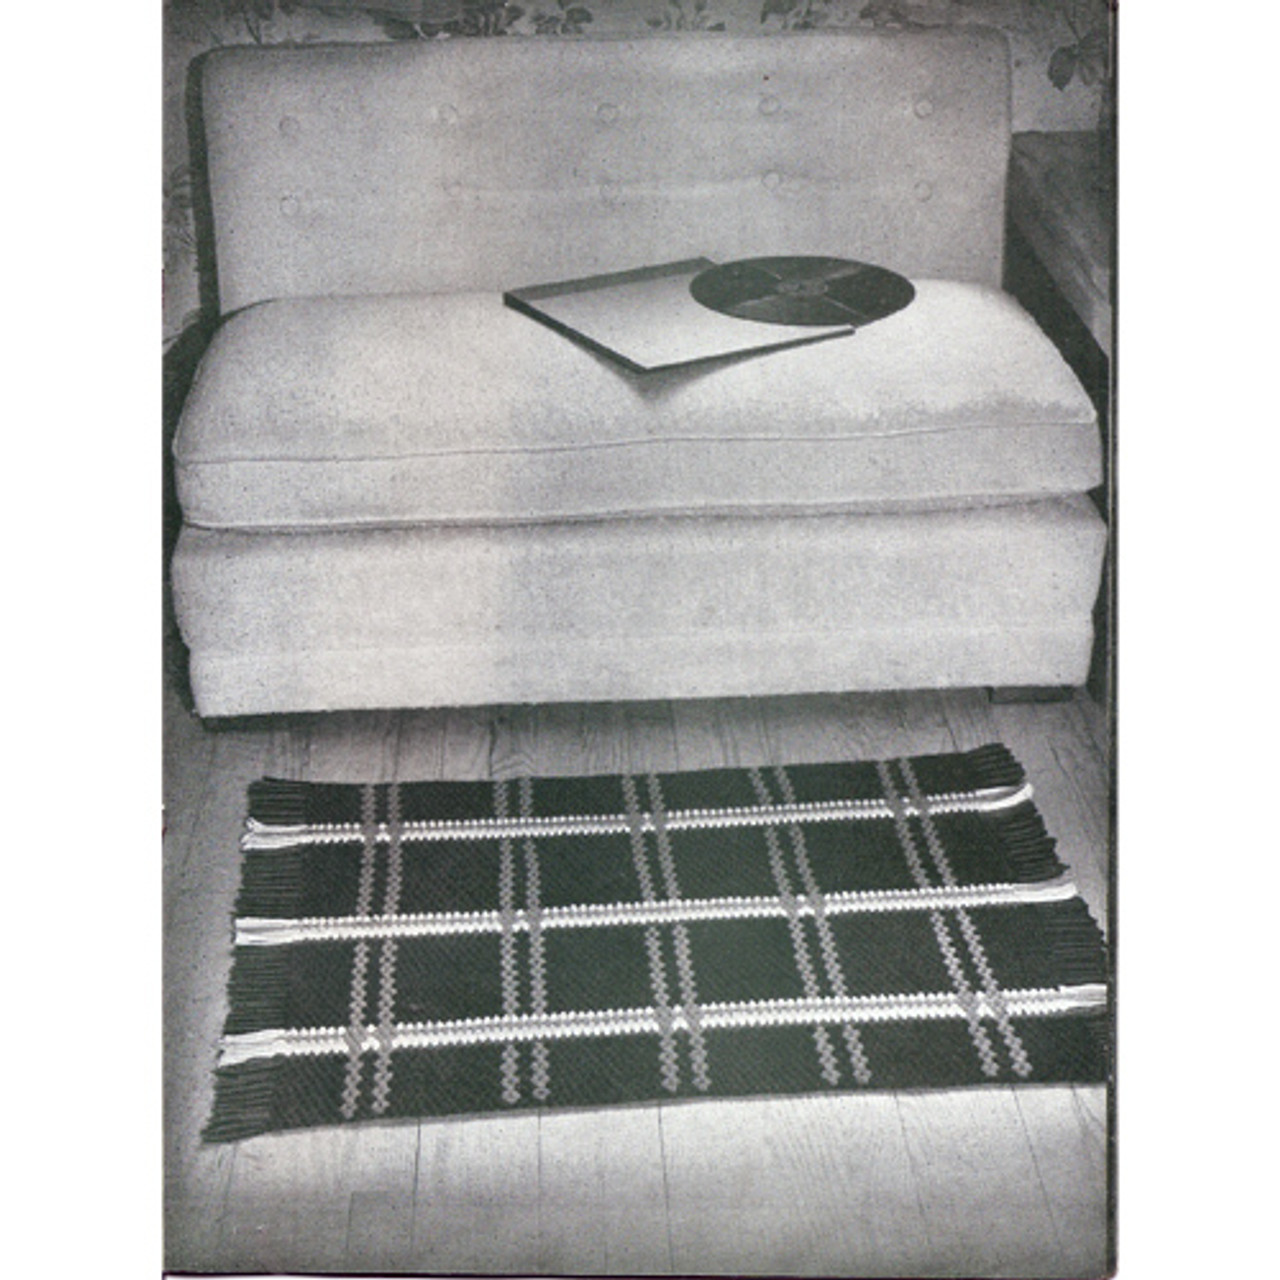 Crocheted Area Rug Pattern in Plaid